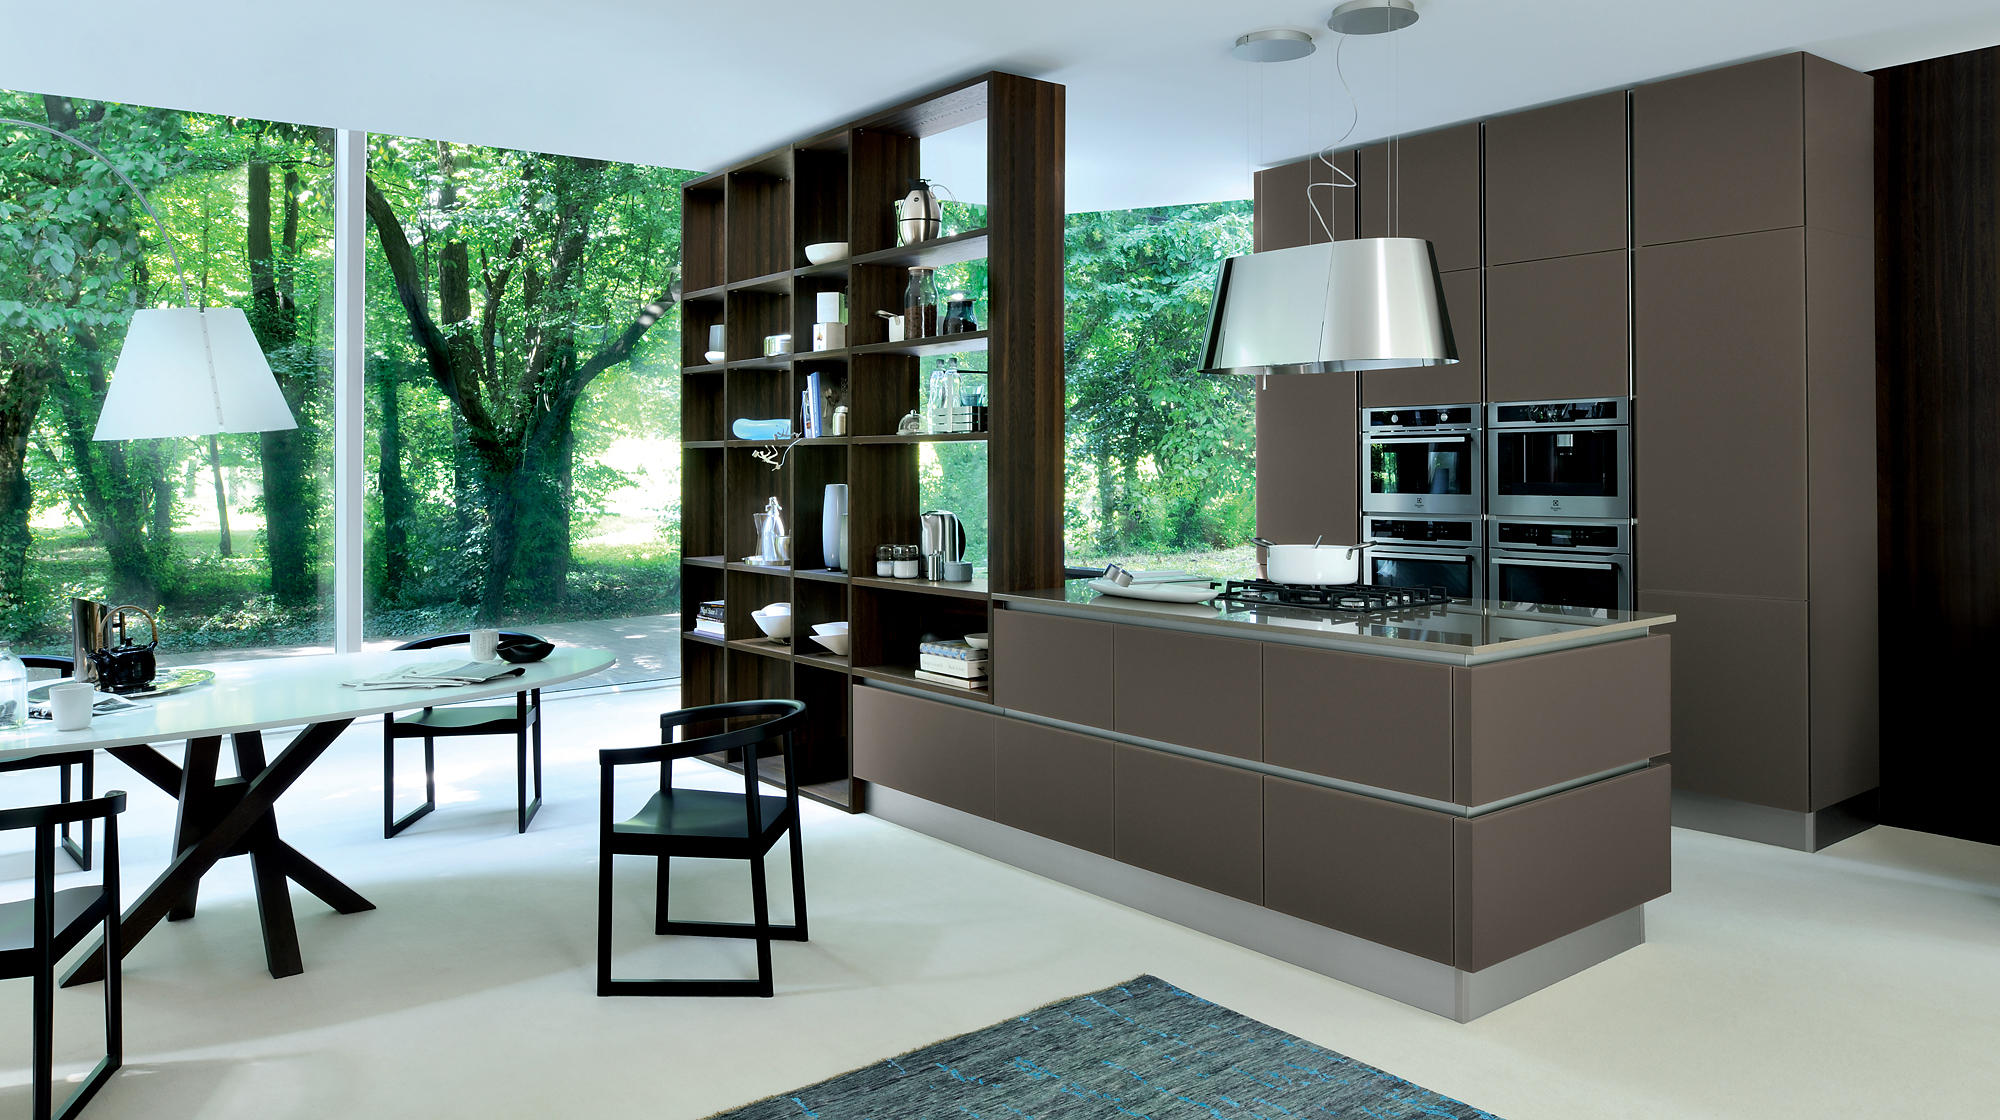 RI-FLEX - Island kitchens from Veneta Cucine | Architonic